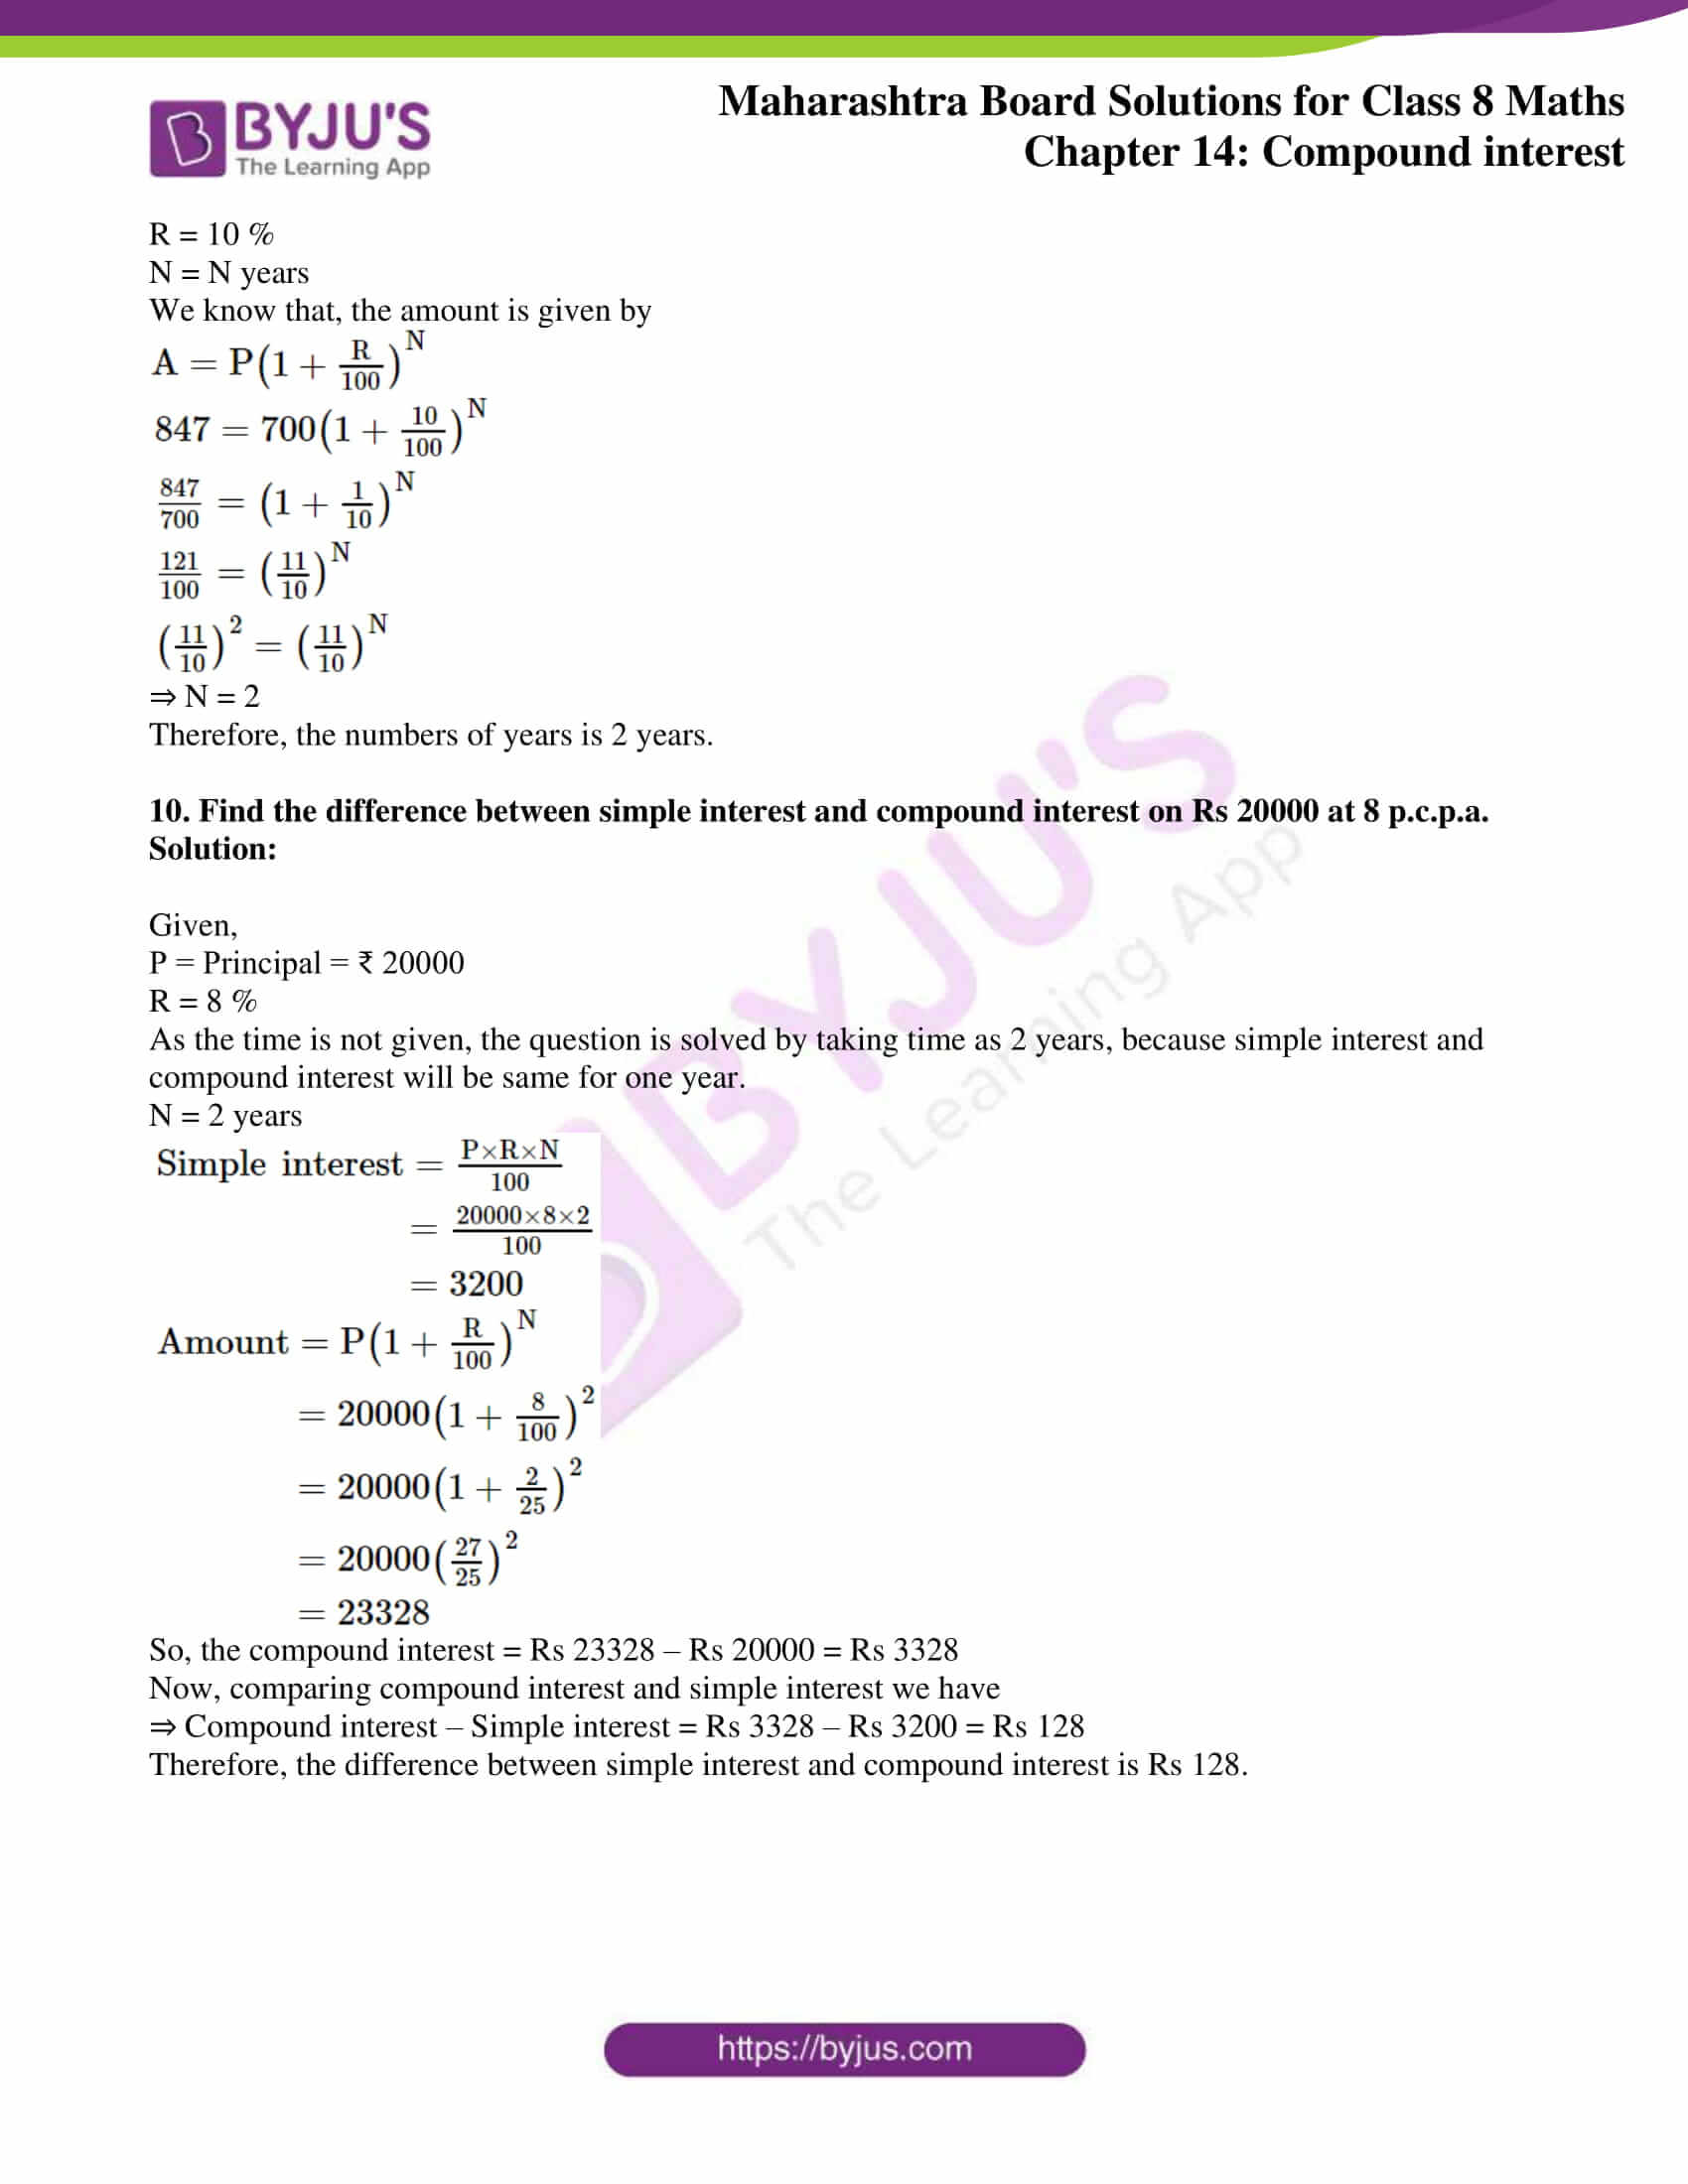 msbshse sol for class 8 maths chapter 14 7